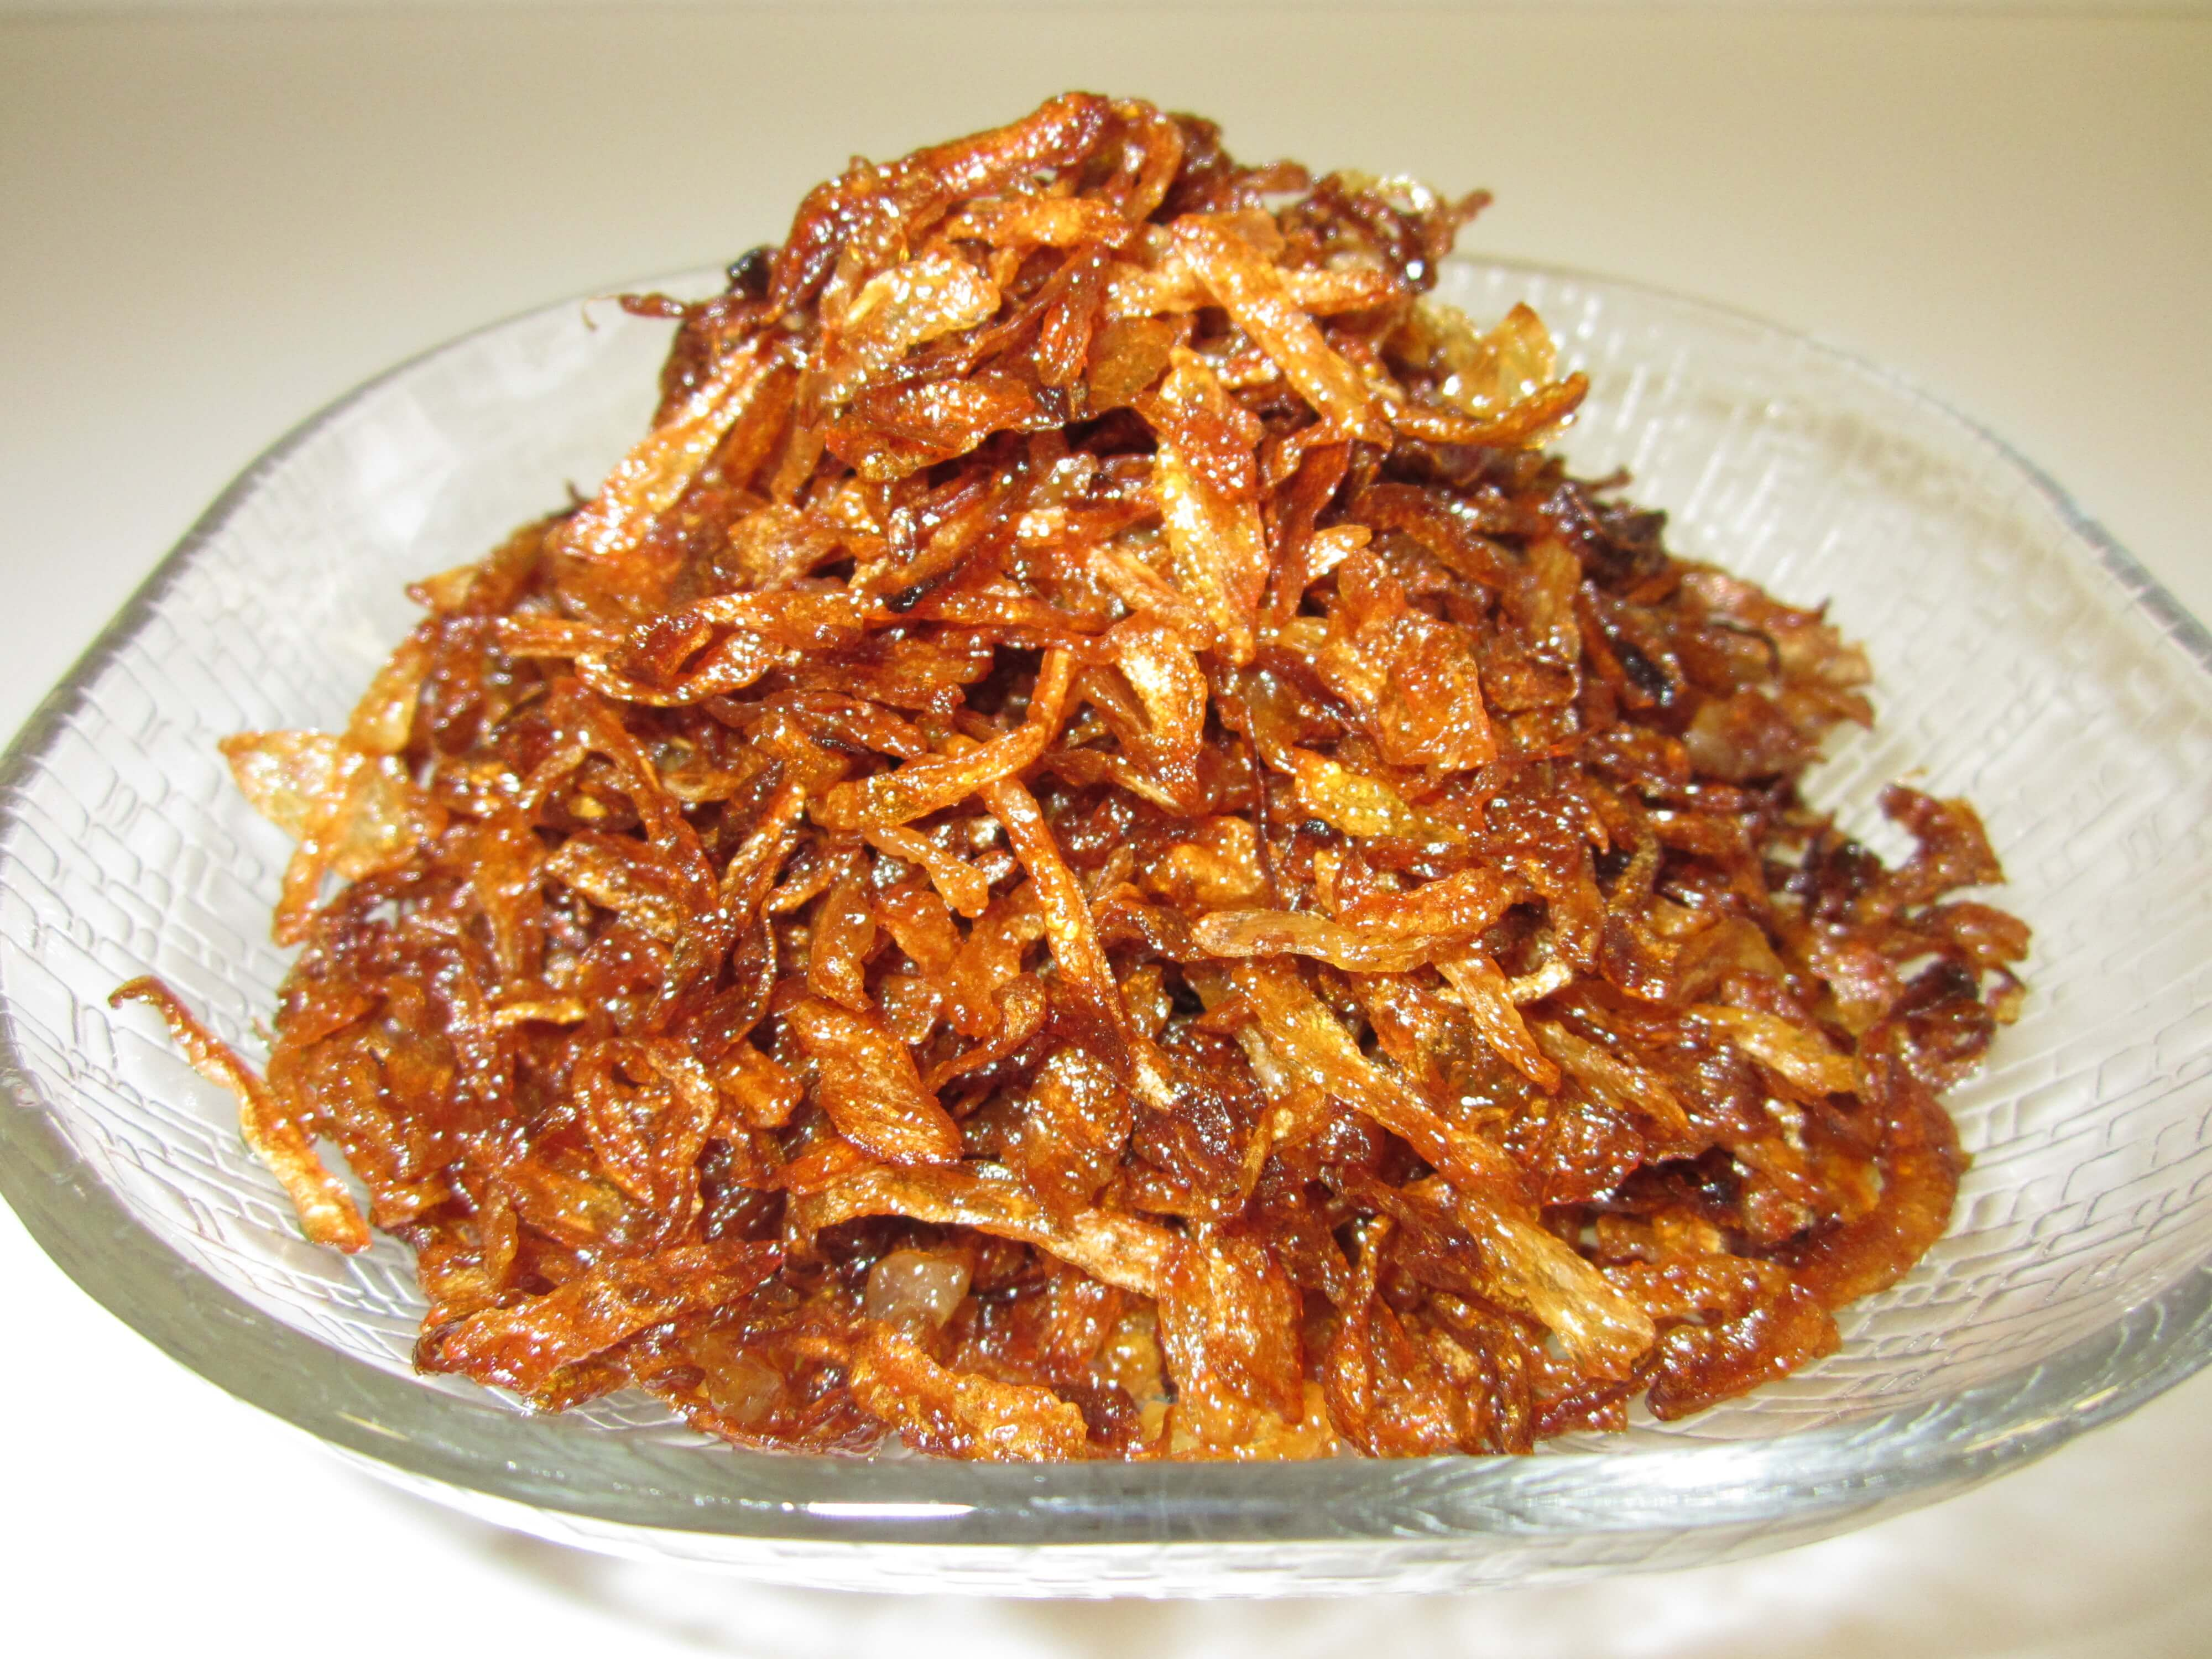 piaz dagh  u2022  u067e u06cc u0627 u0632  u062f u0627 u063a  u2022 crispy caramelized onion fae s free clipart cooking pot free clip art cookies